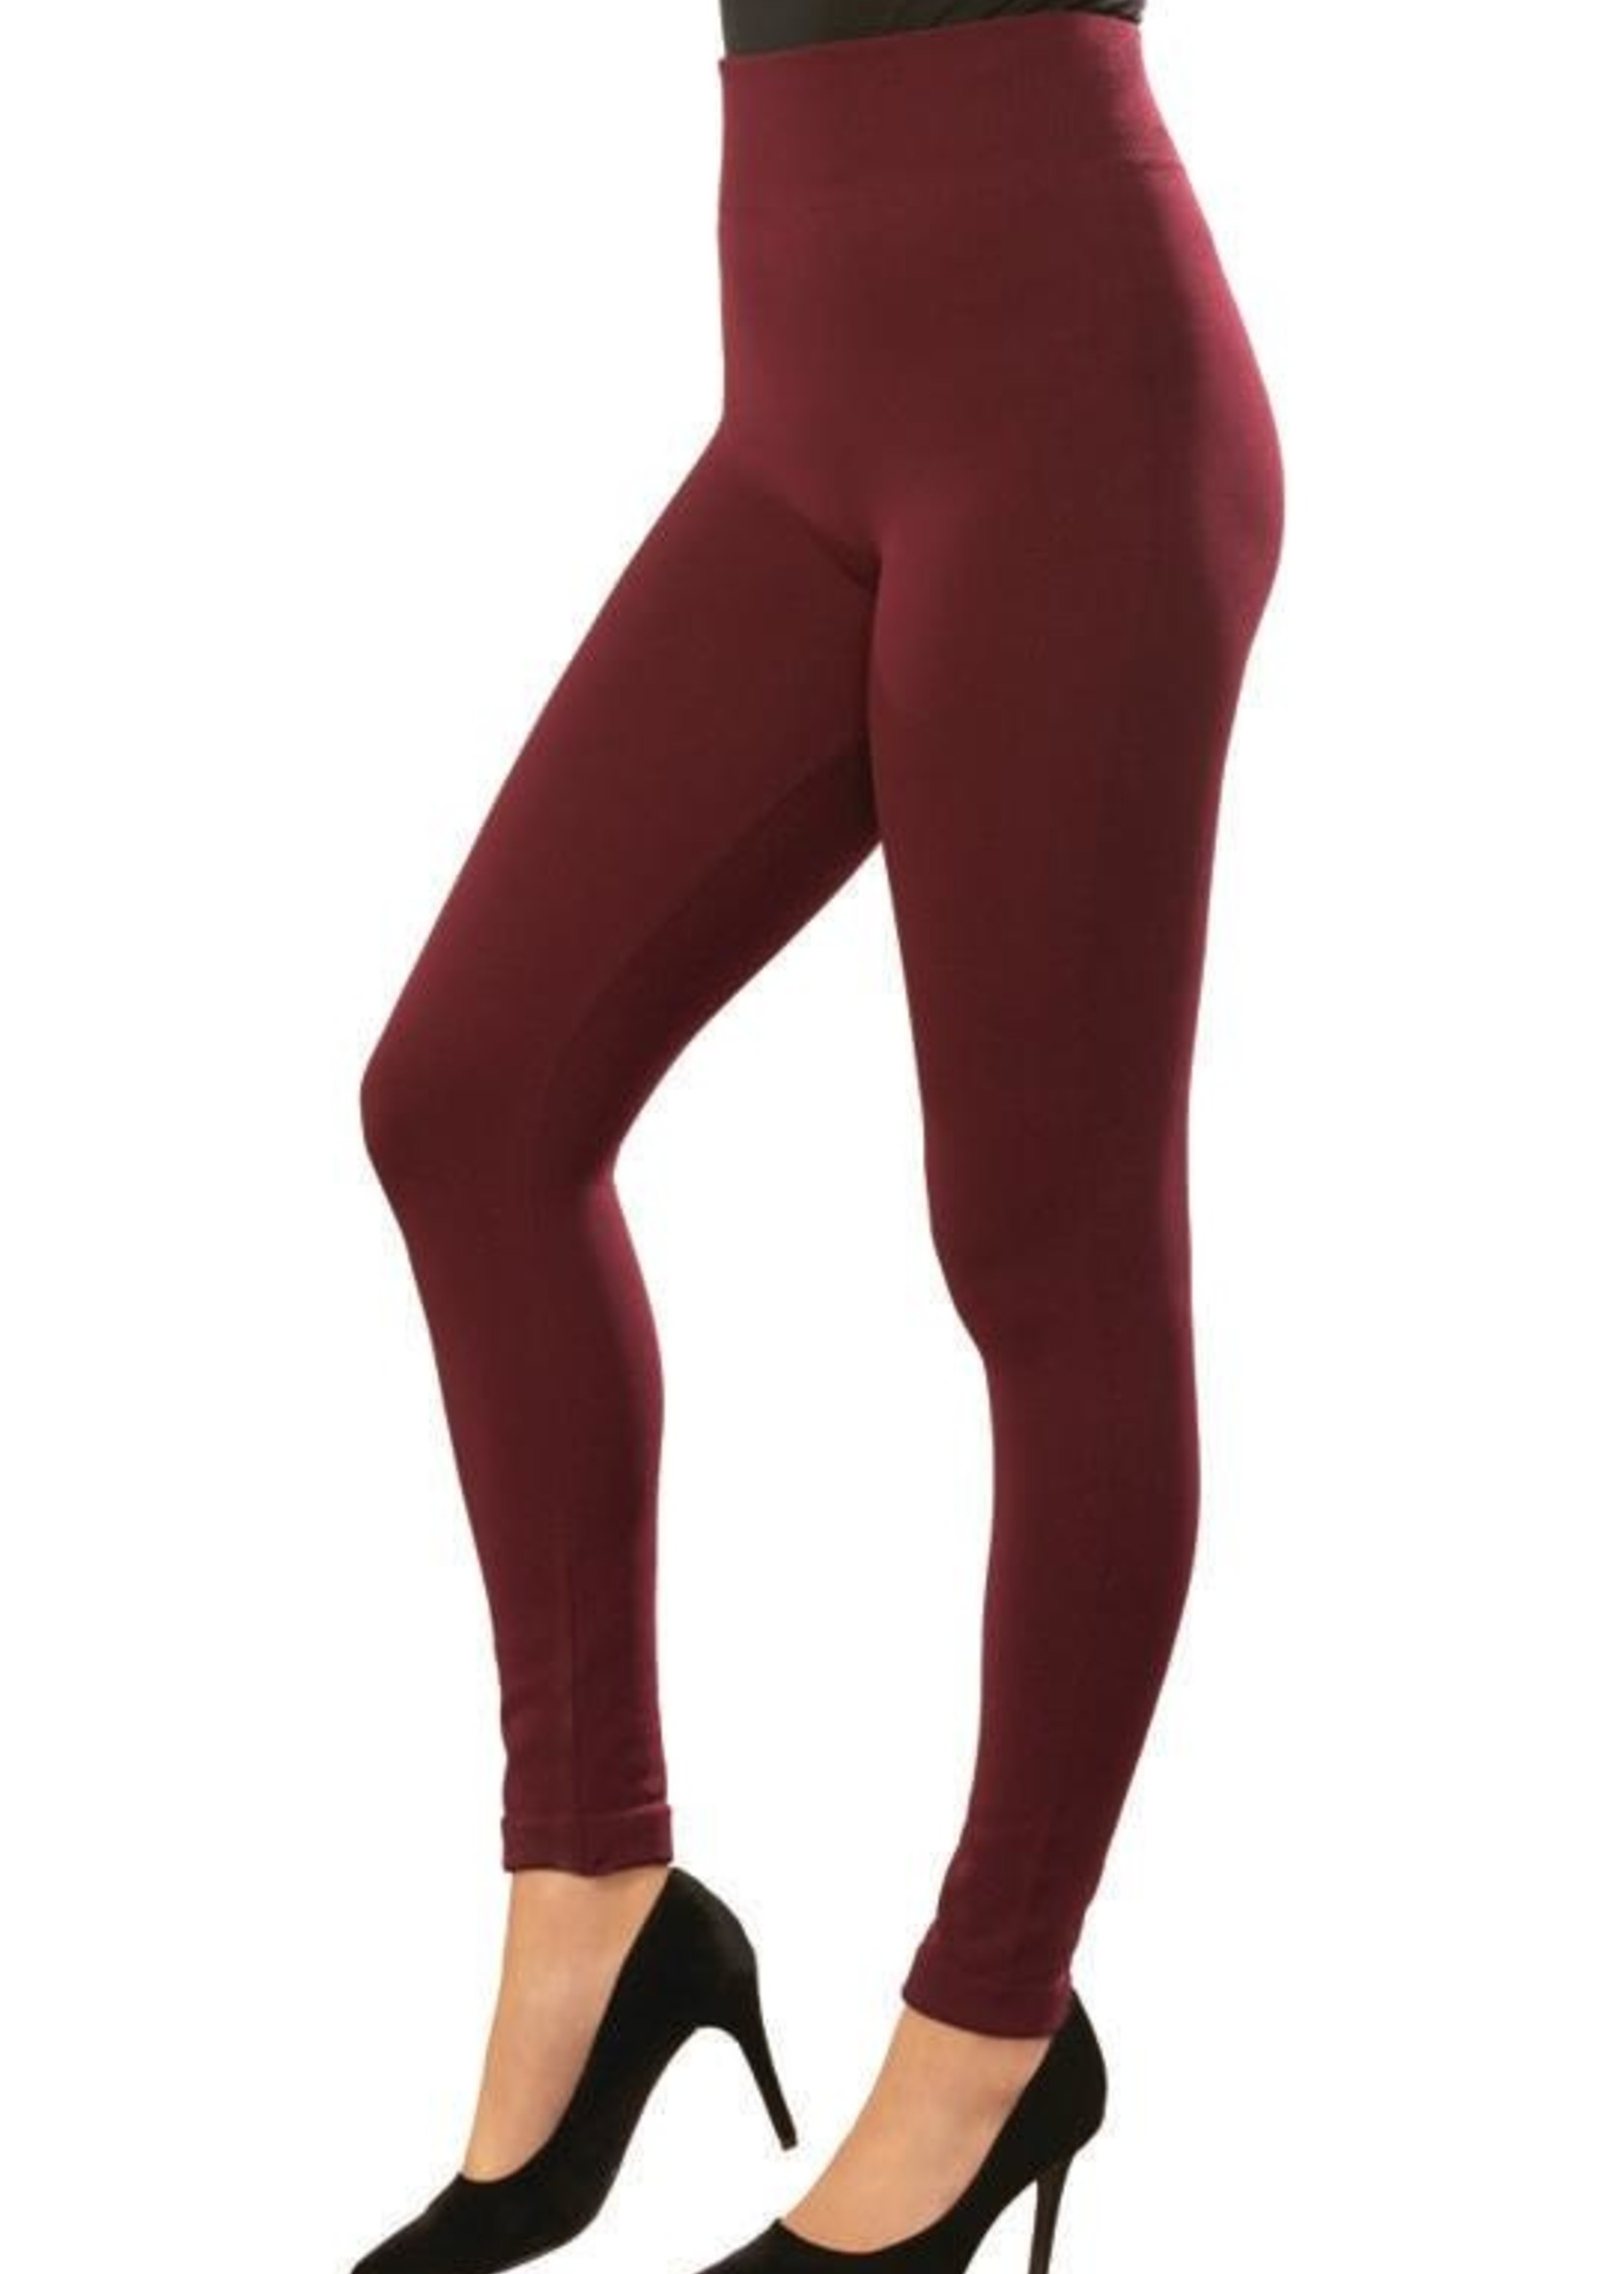 Charlie Page L/XL Signature Fleece Lined Leggings - Brown